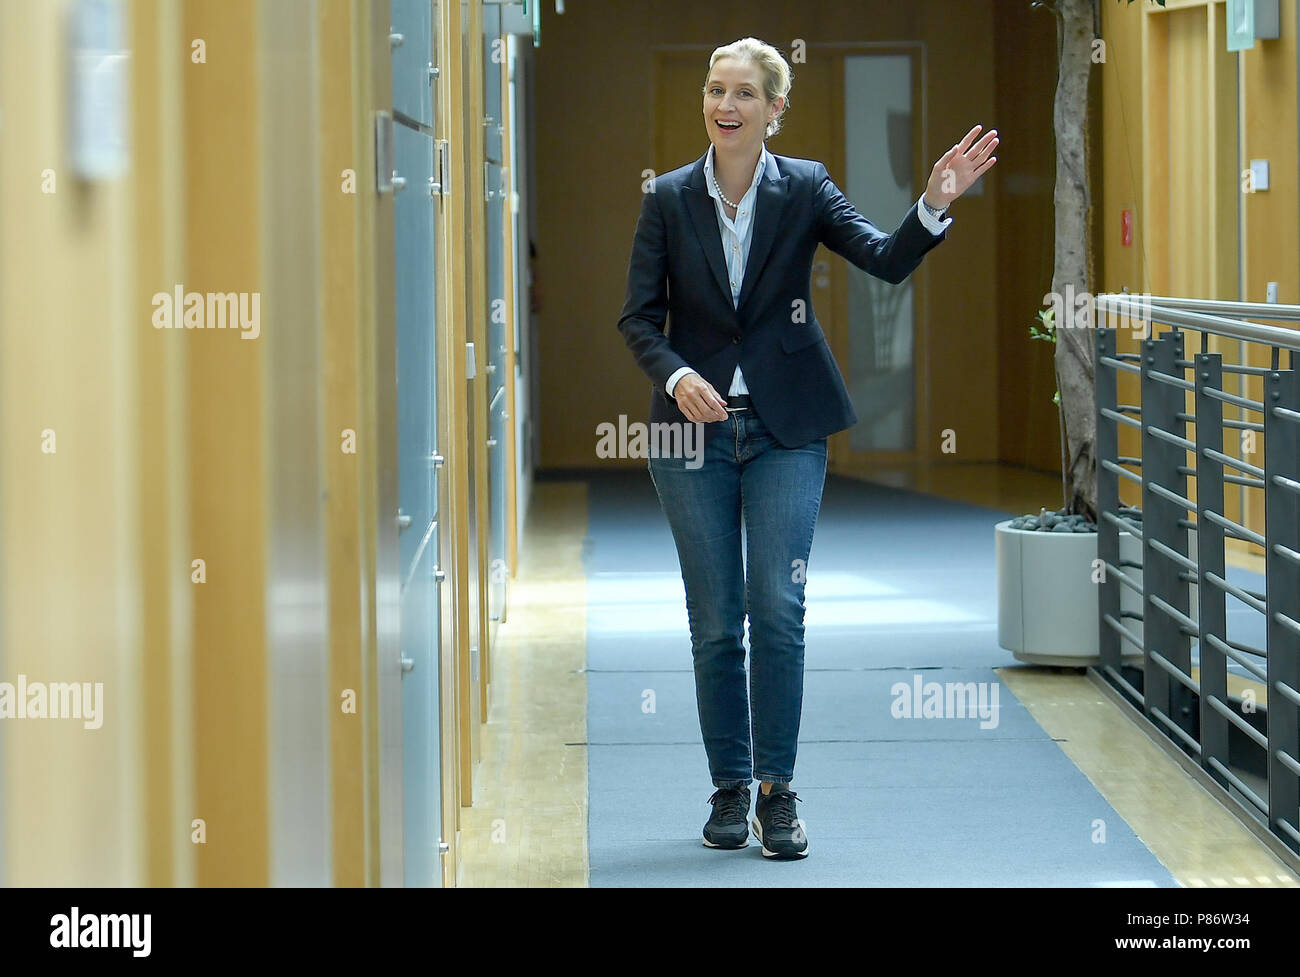 Berlin, Germany. 10th July, 2018. Alice Weidel, parliamentary group leader of the Alternative for Germany (AfD) in the German Bundestag, walks to a press statement on the 'Masterplan Migration', which was previously presented by the German Minister of the Interior. Credit: Britta Pedersen/dpa-Zentralbild/dpa/Alamy Live News - Stock Image